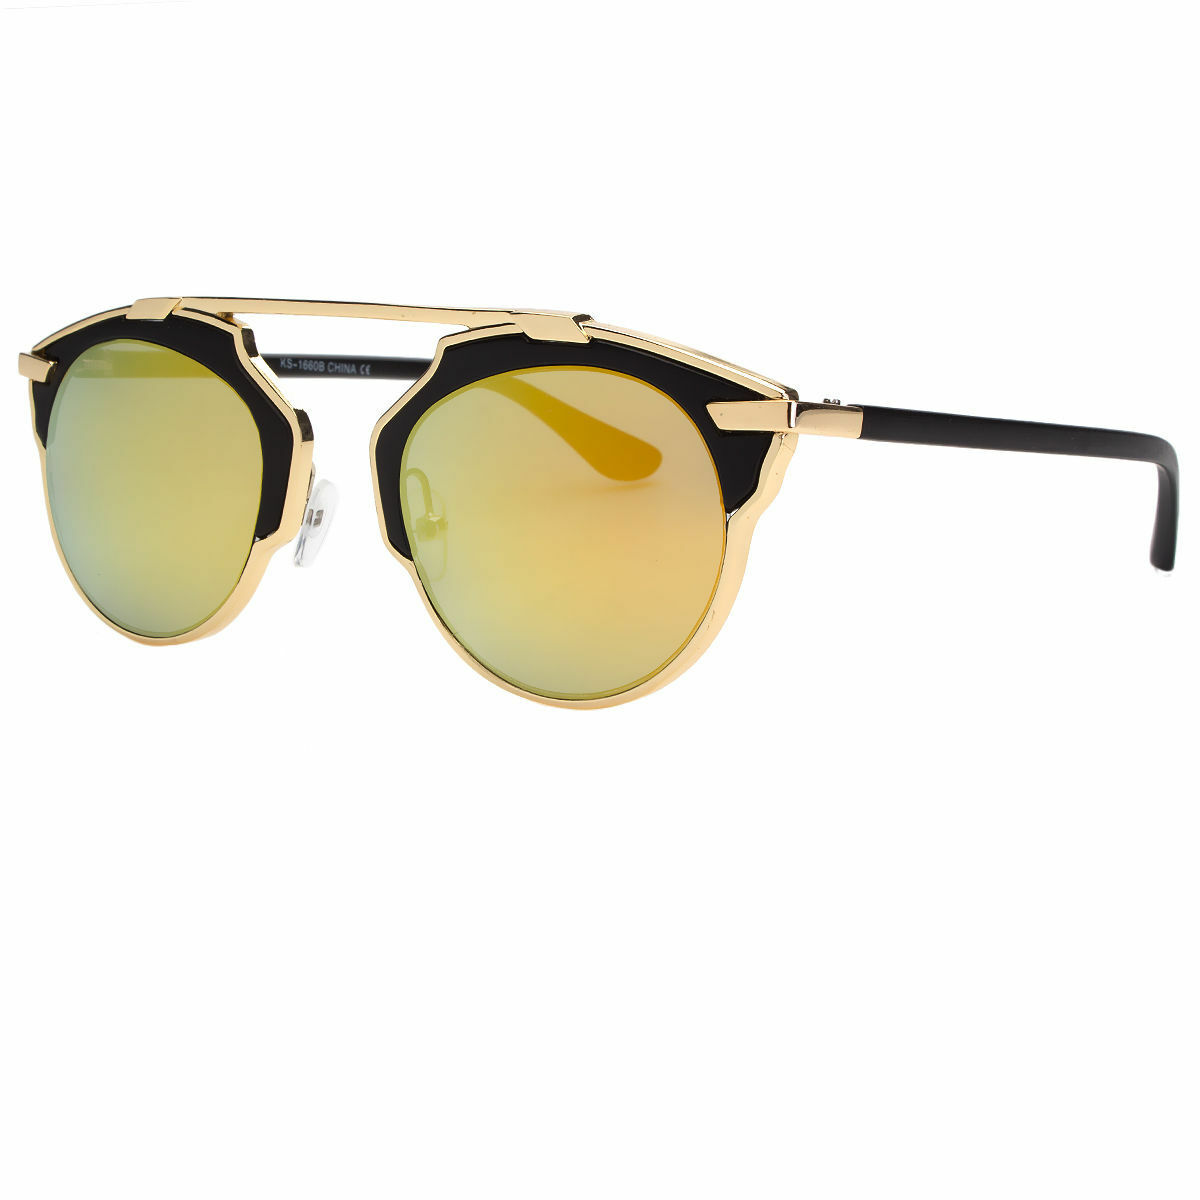 Cat Eye Women Fashion Sunglasses Gold Metal Rim Mirrored Lens Blue Black Pink